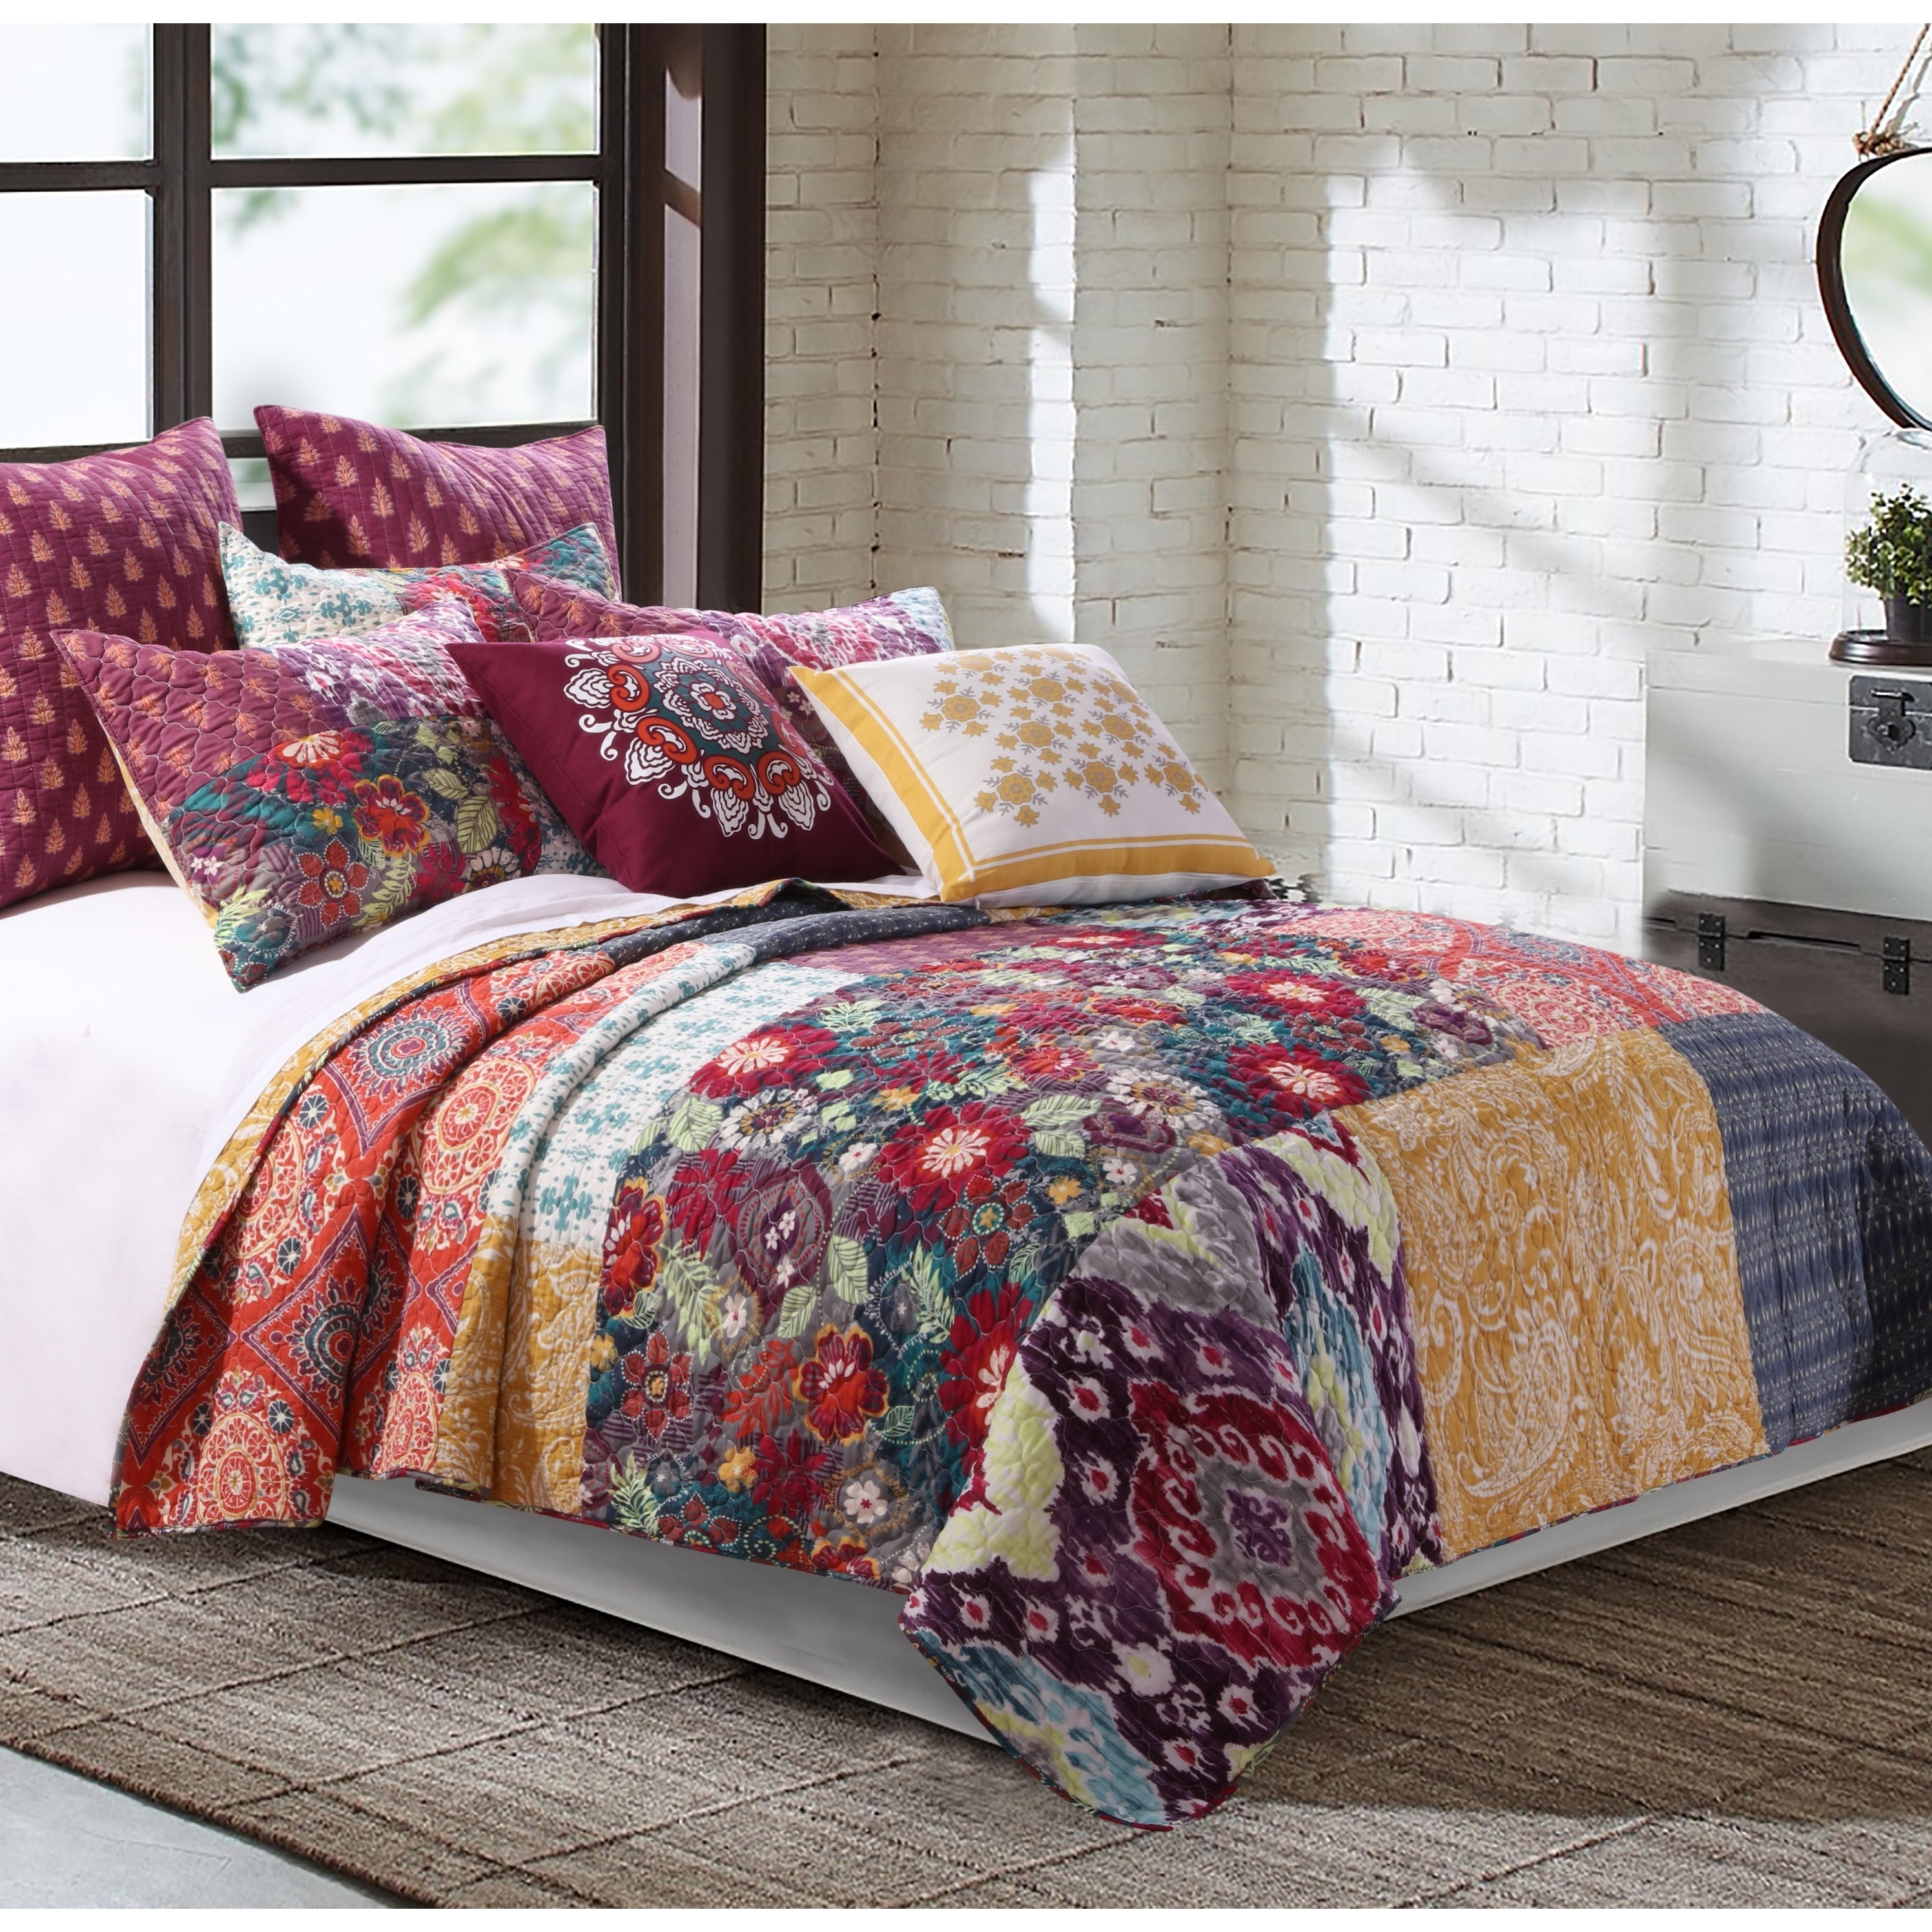 smith story shop quilts relationship the quilt sleepy client thoughts b patterns on fox